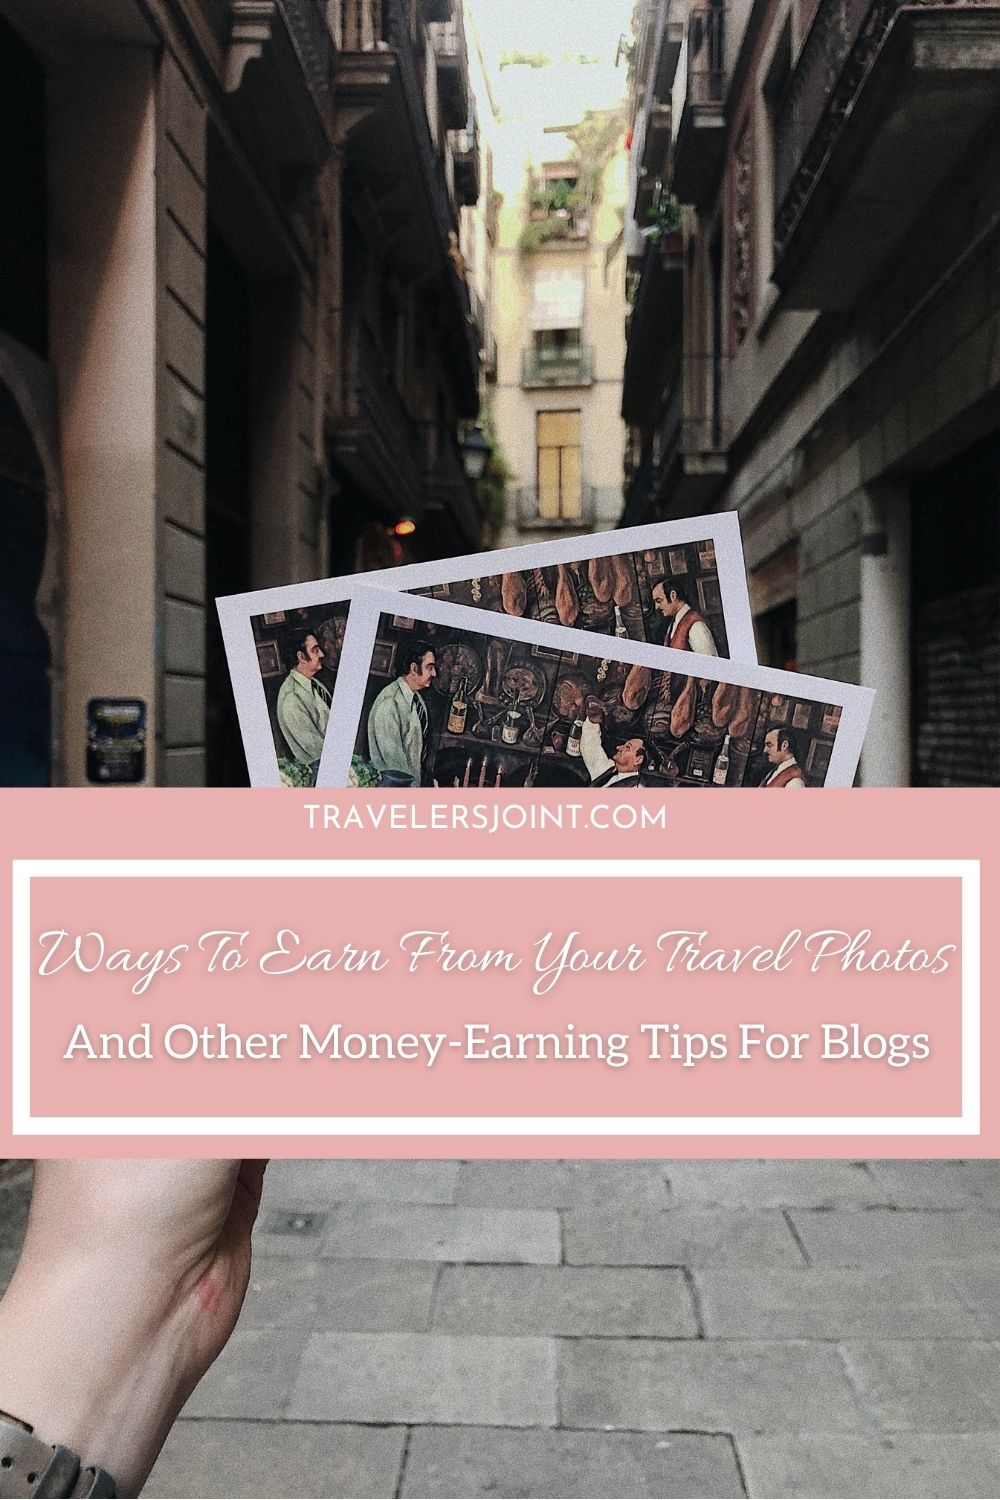 Ways To Earn From Your Travel Photos And Other Money-Earning Tips For Blogs